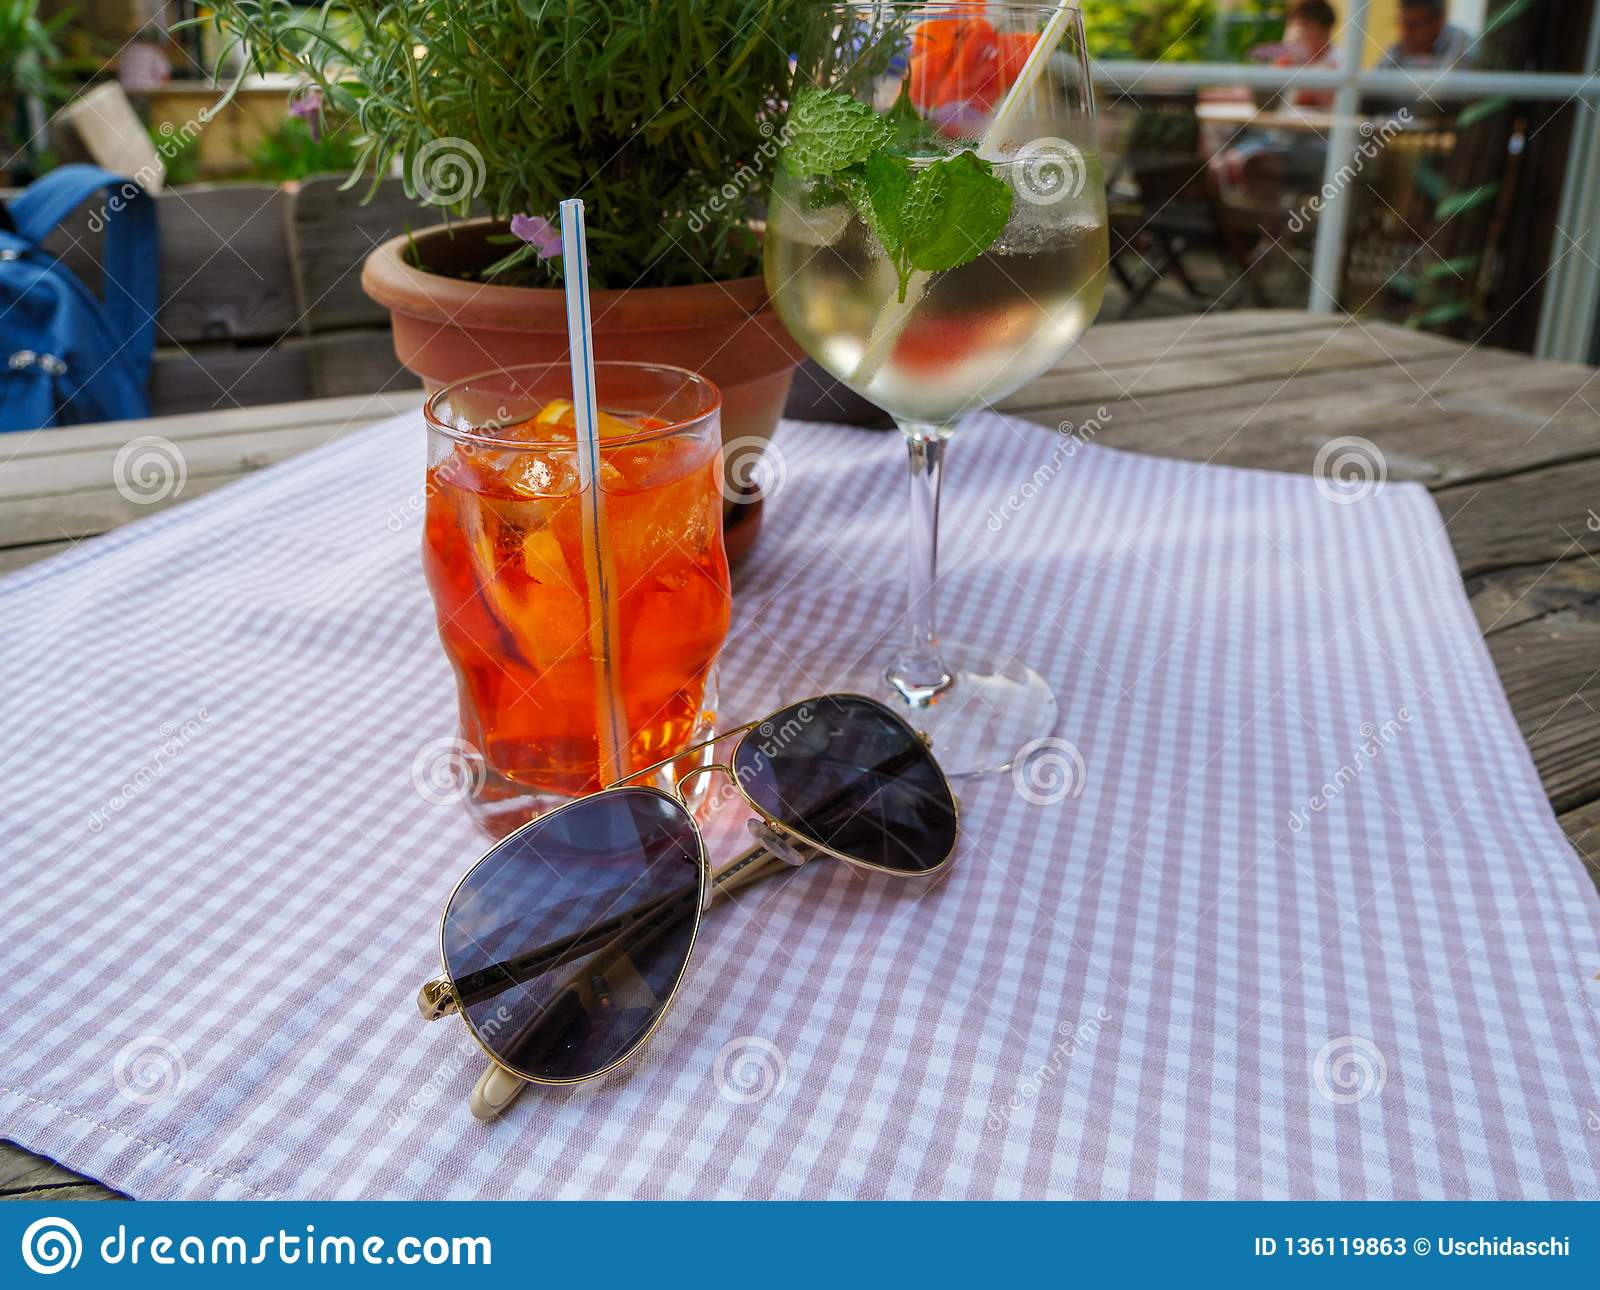 Image of summer drinks and sunglasses on table